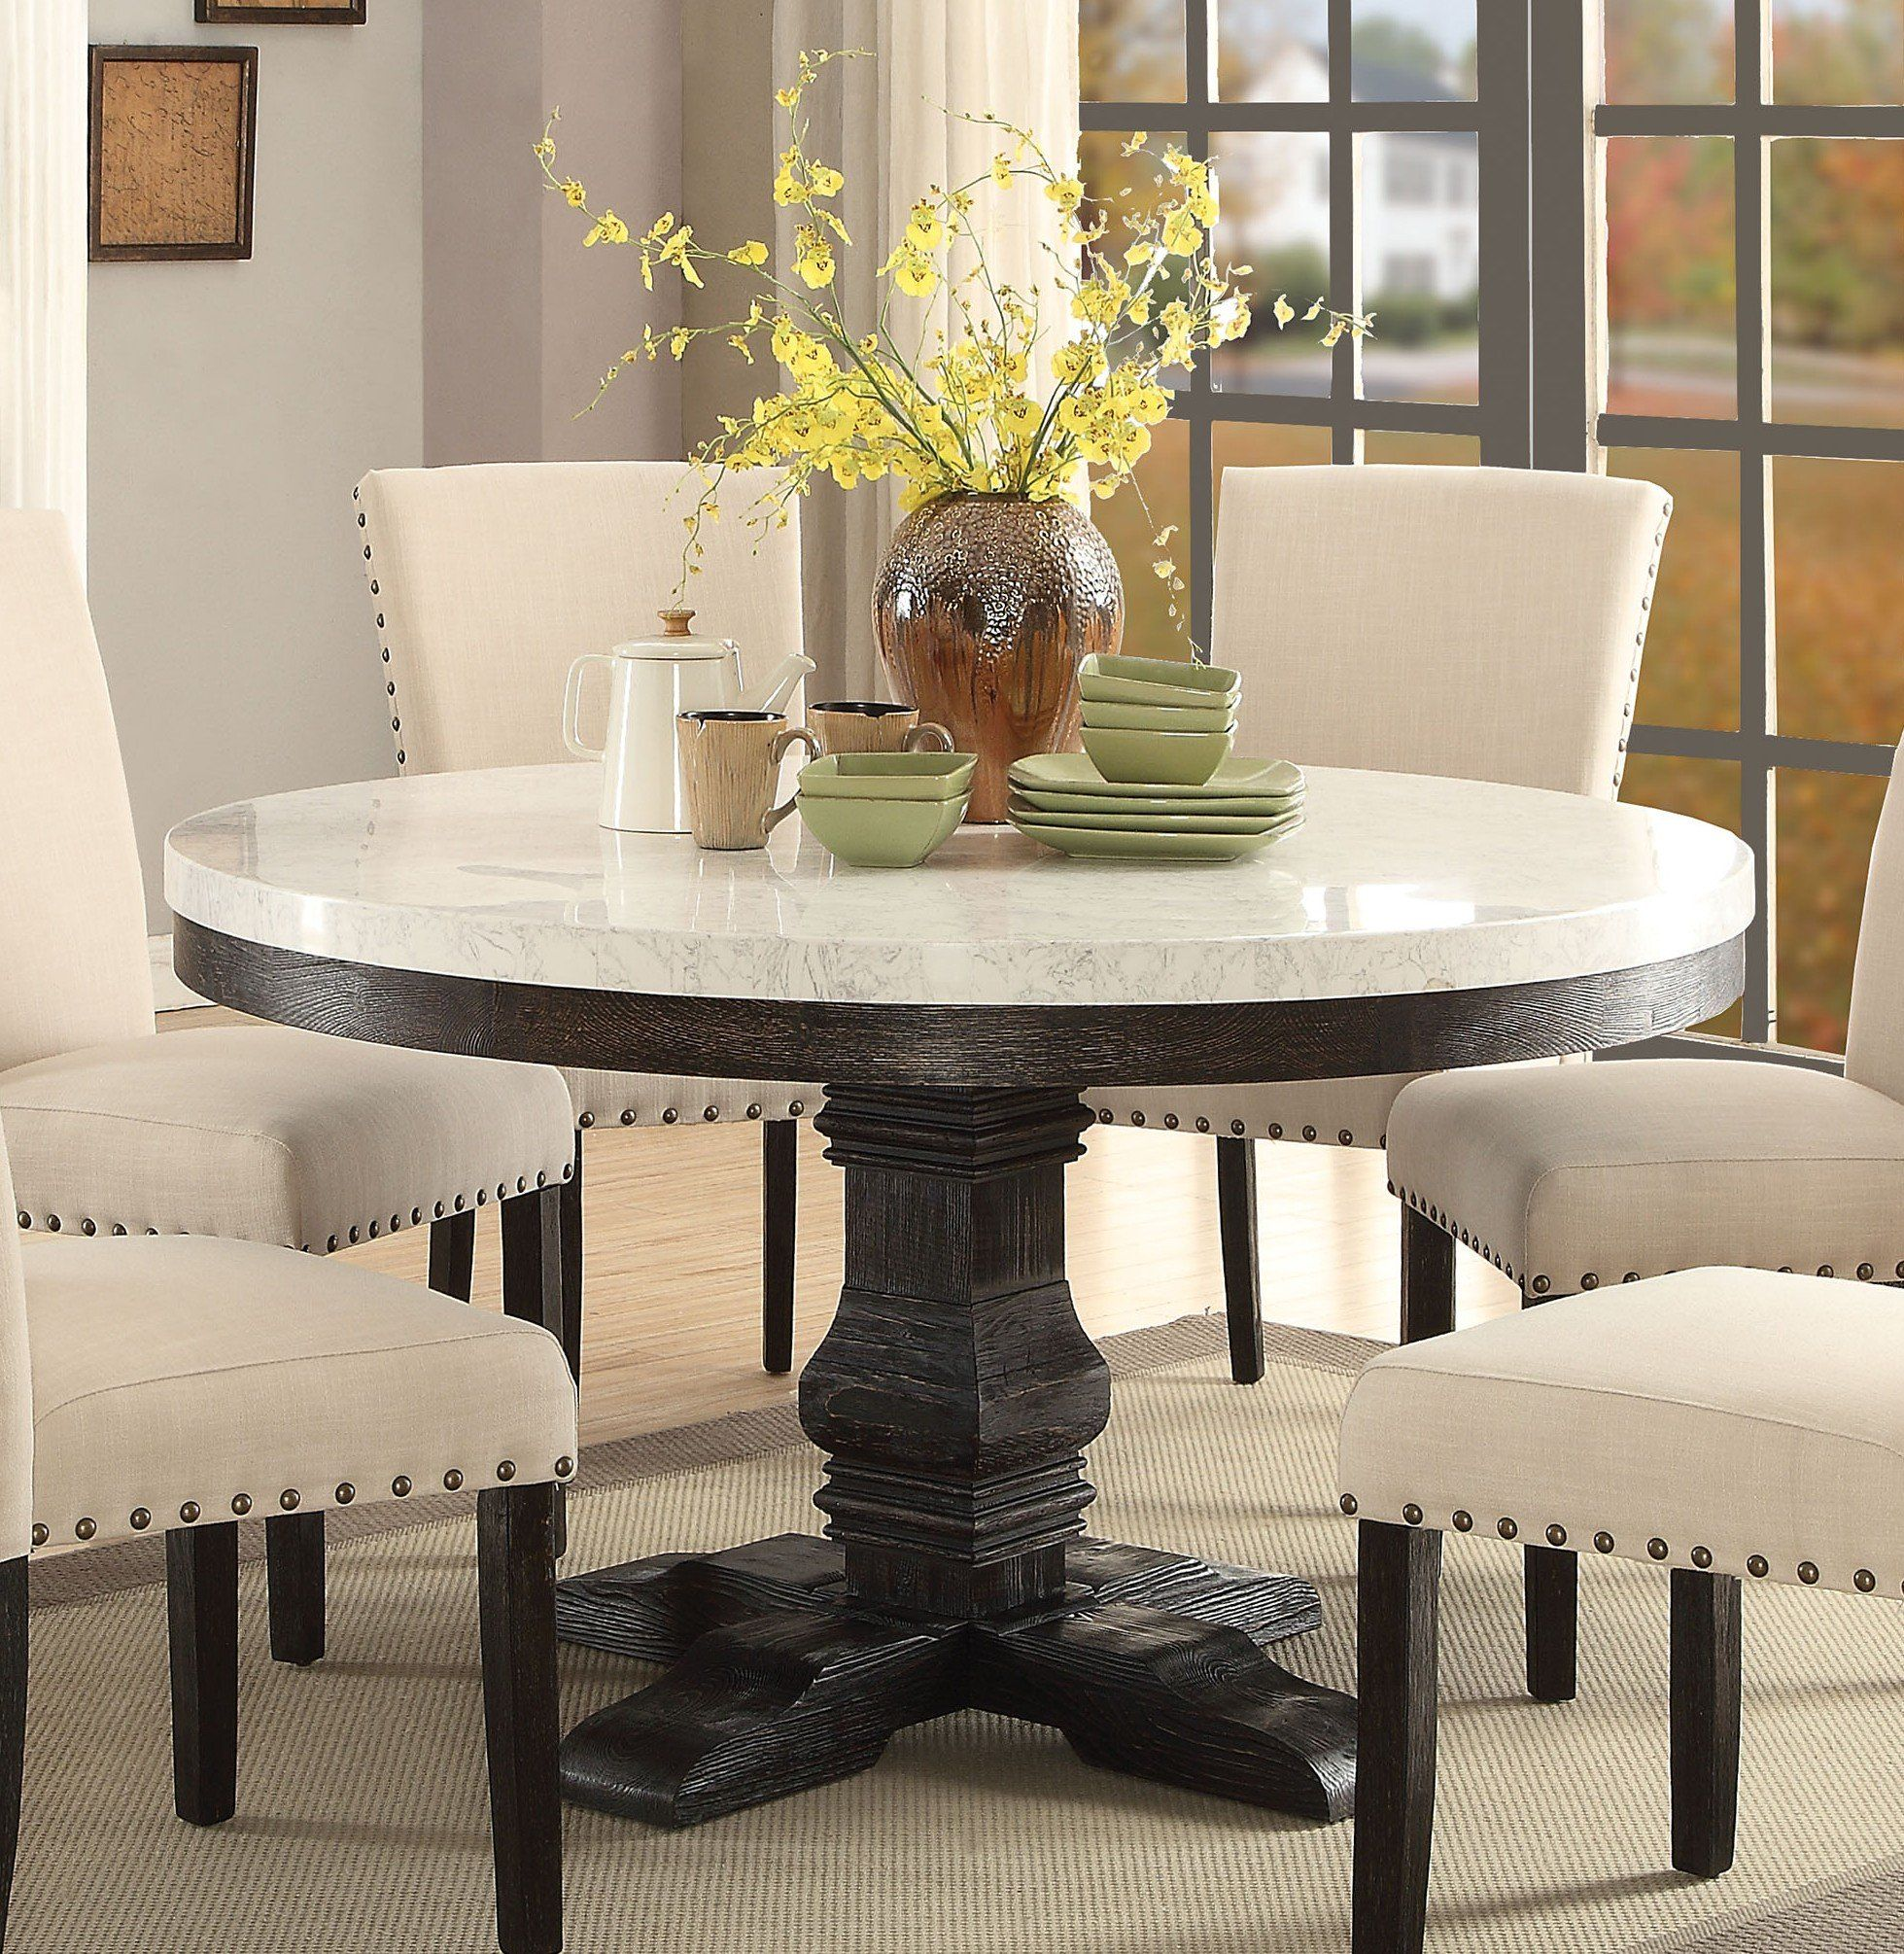 Very Elegant Marble Top Dining Table Acme 72845 Nolan White Marble Top Round Dining Table